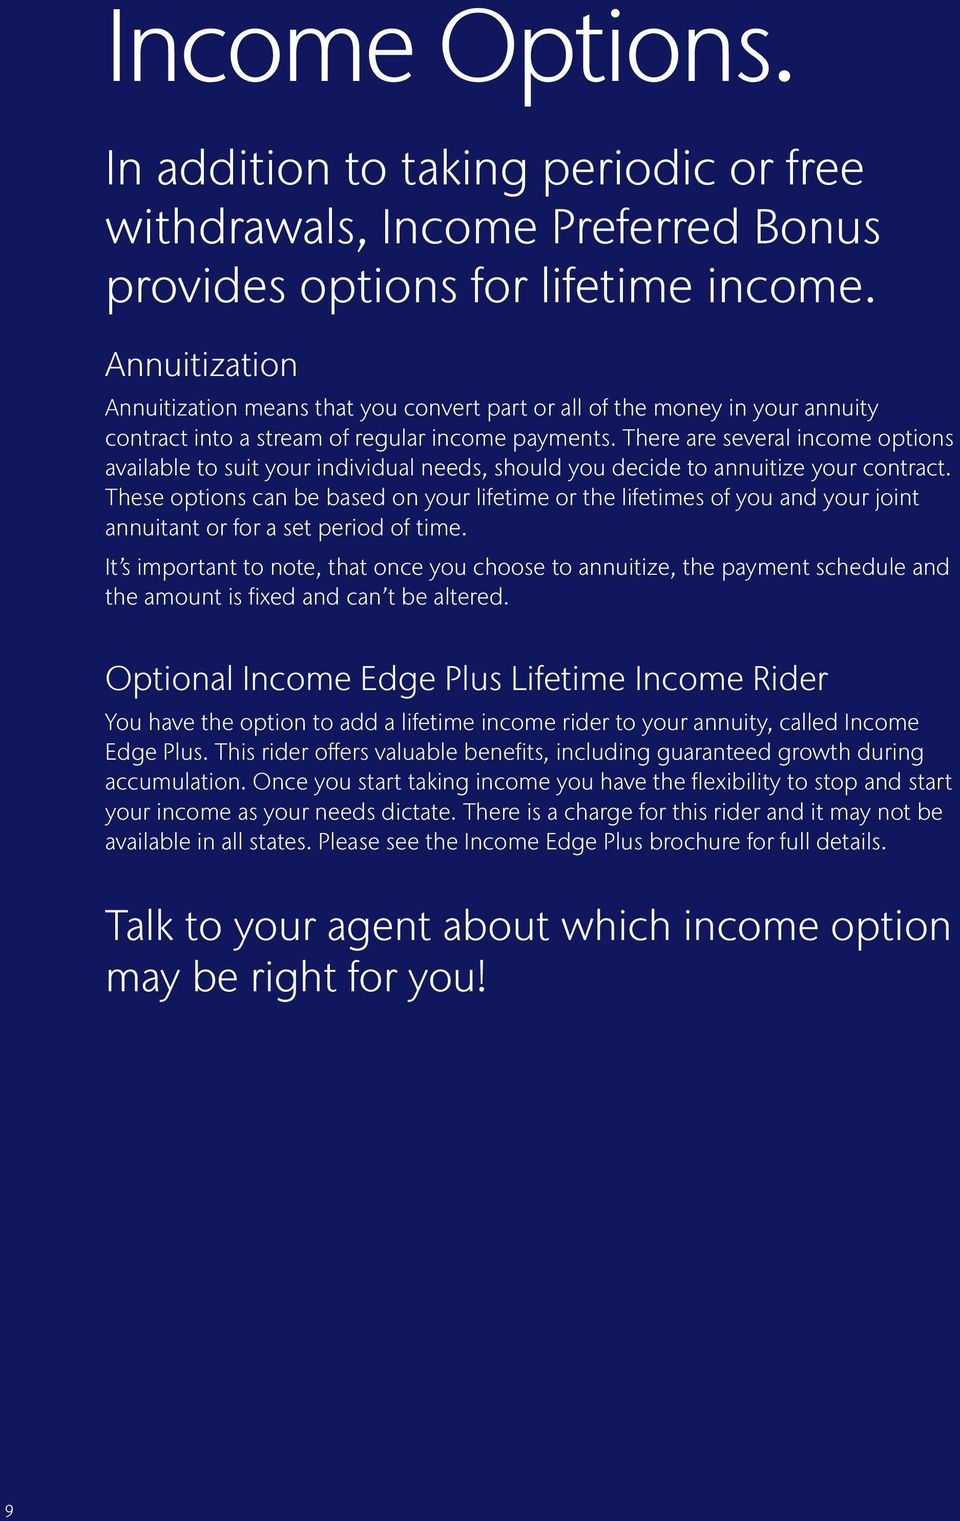 There are several income options available to suit your individual needs, should you decide to annuitize your contract.